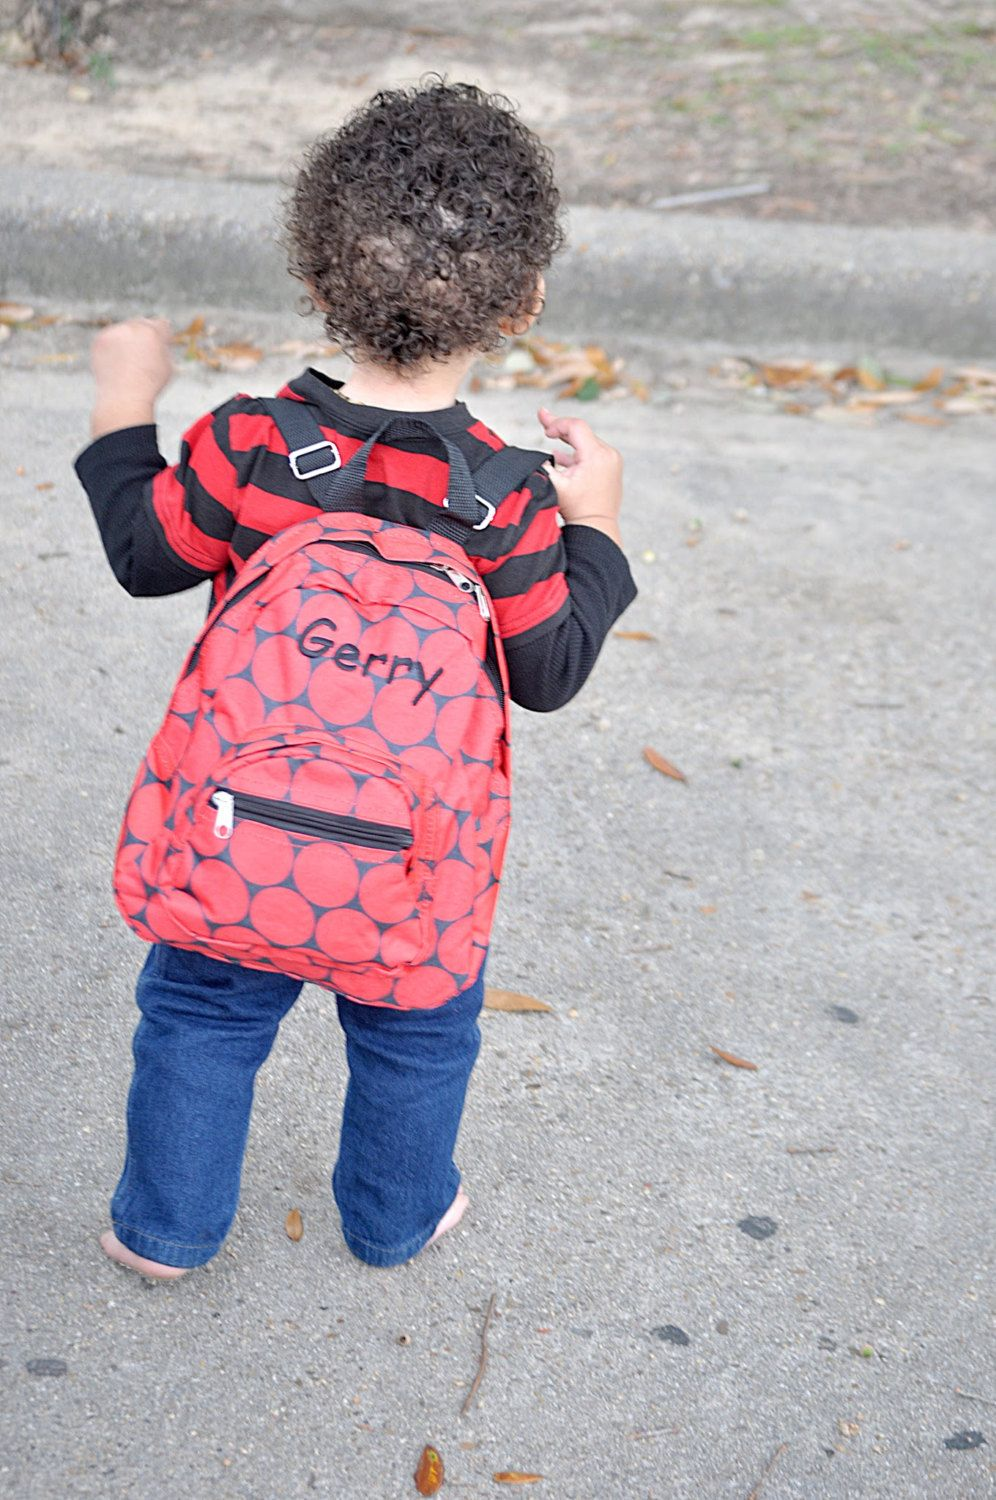 c521571beccab Monogrammed Mini Toddler Backpack - Red and Black Dots Napsack -  Personalized with Embroidered Name or Initials by D84Designs on Etsy